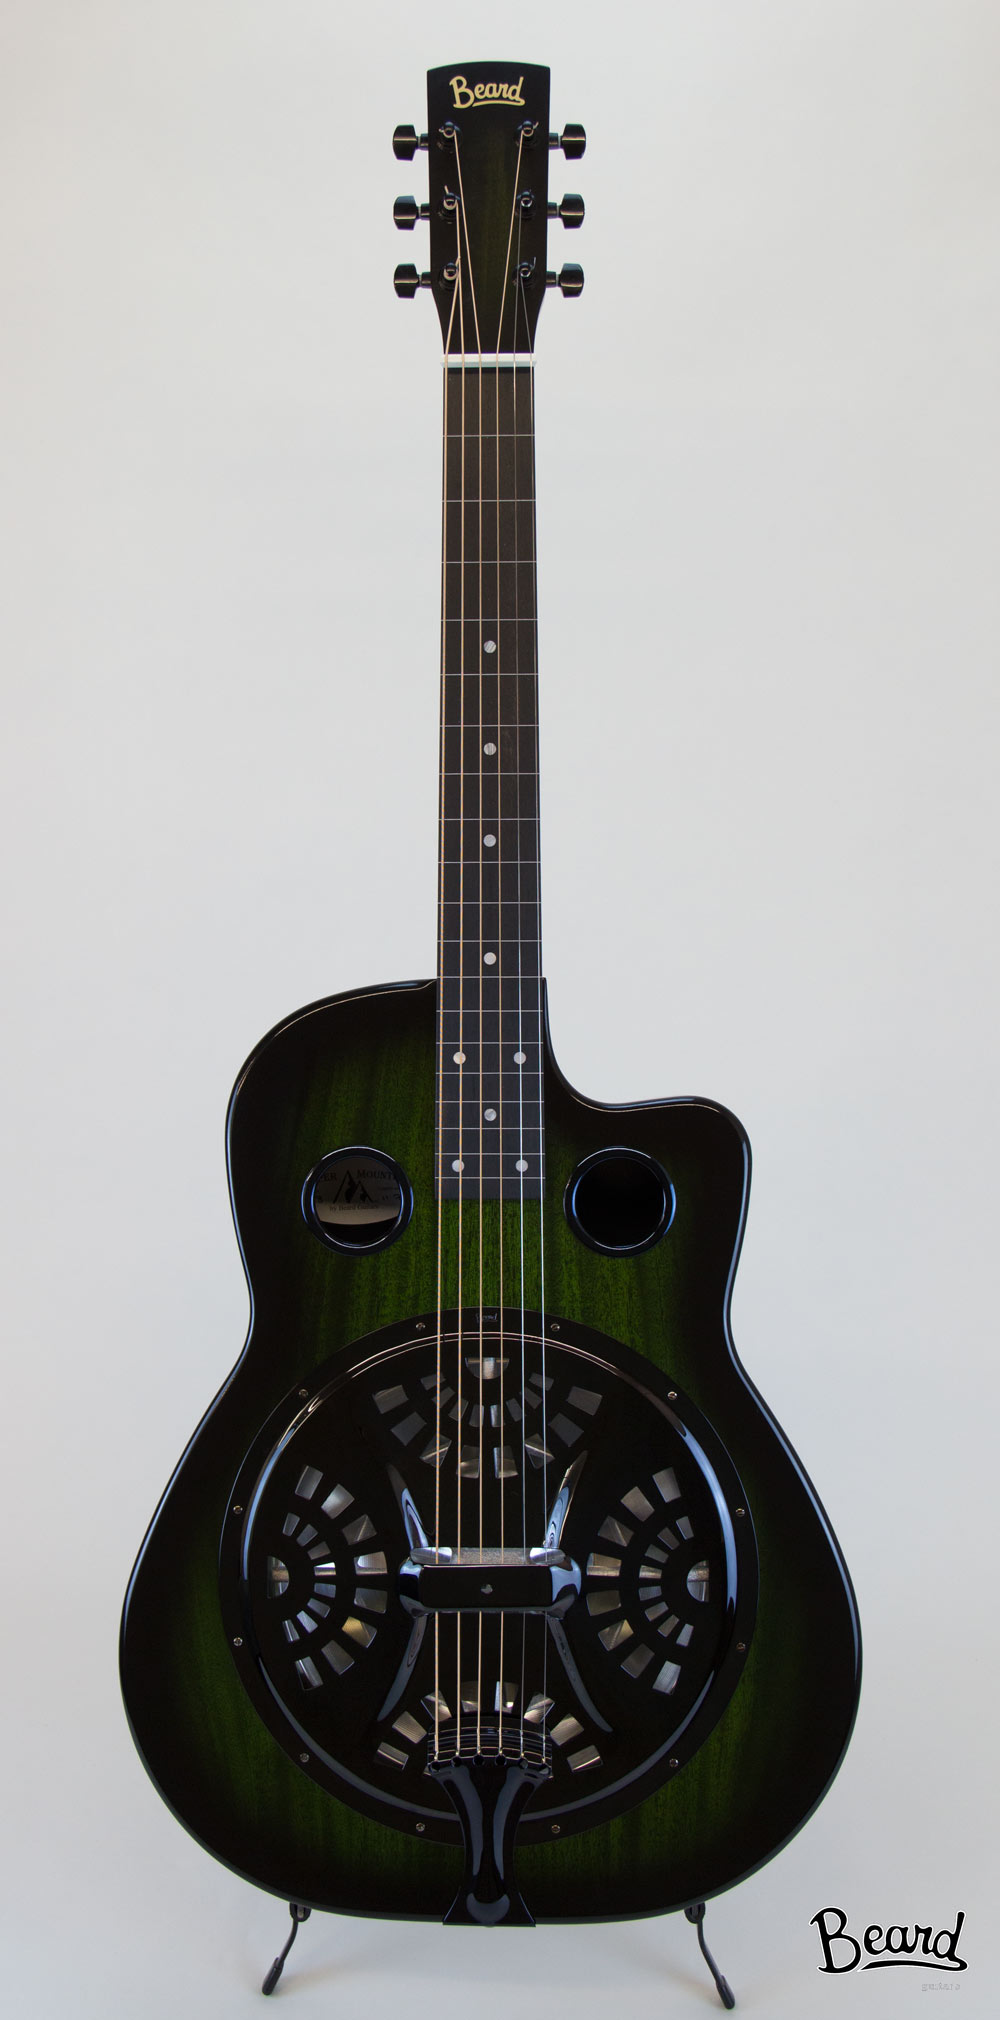 beard guitars for sale resophonic outfitters. Black Bedroom Furniture Sets. Home Design Ideas